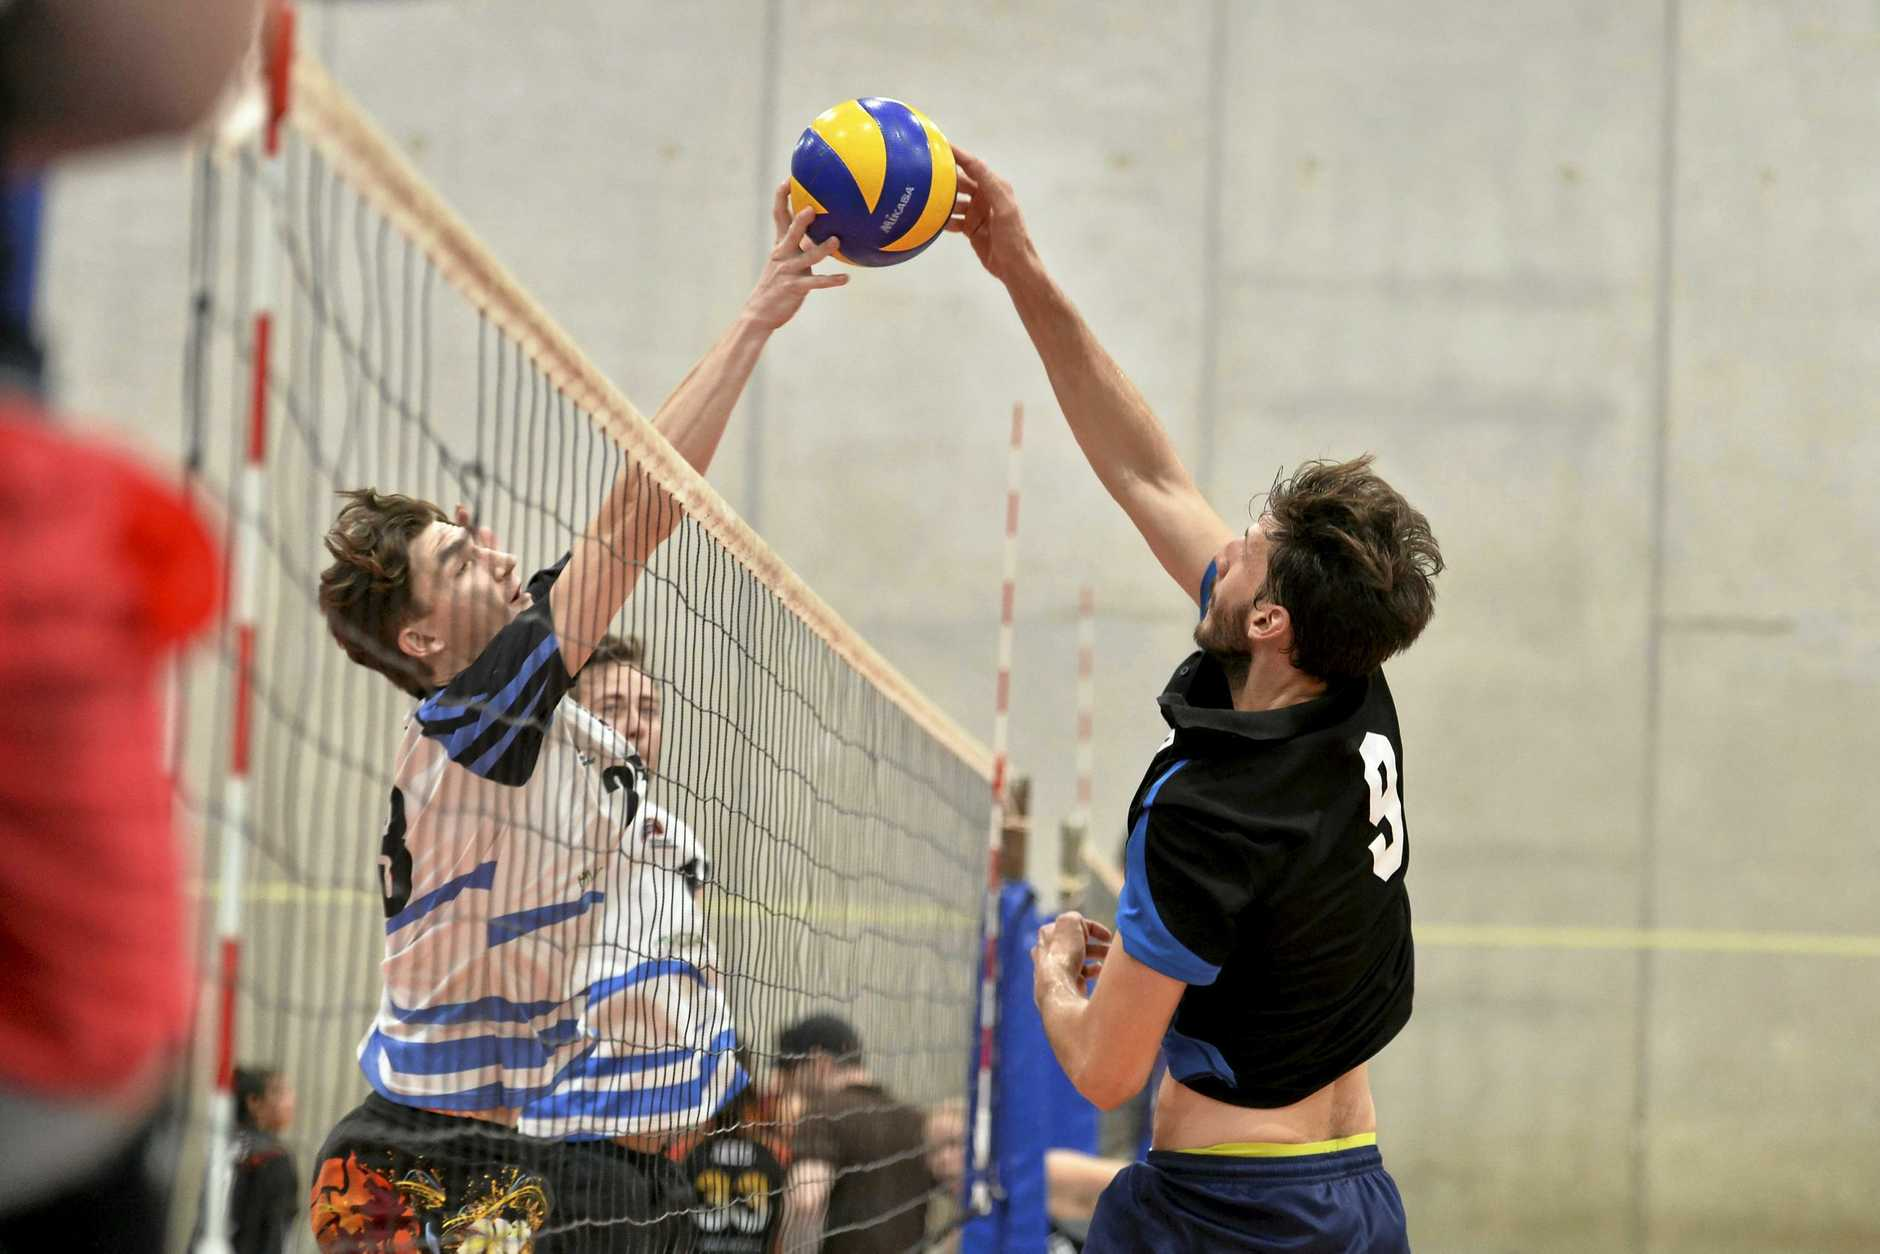 NET BATTLE: Brisbane Volleyball Club'S Connor Rudder (left) and Remember the Titans player Marco Calderini do battle at the net in the final of the Clash of the Titans volleyball tournament at Harristown State High School gym. Brisbane won the final 2-1.